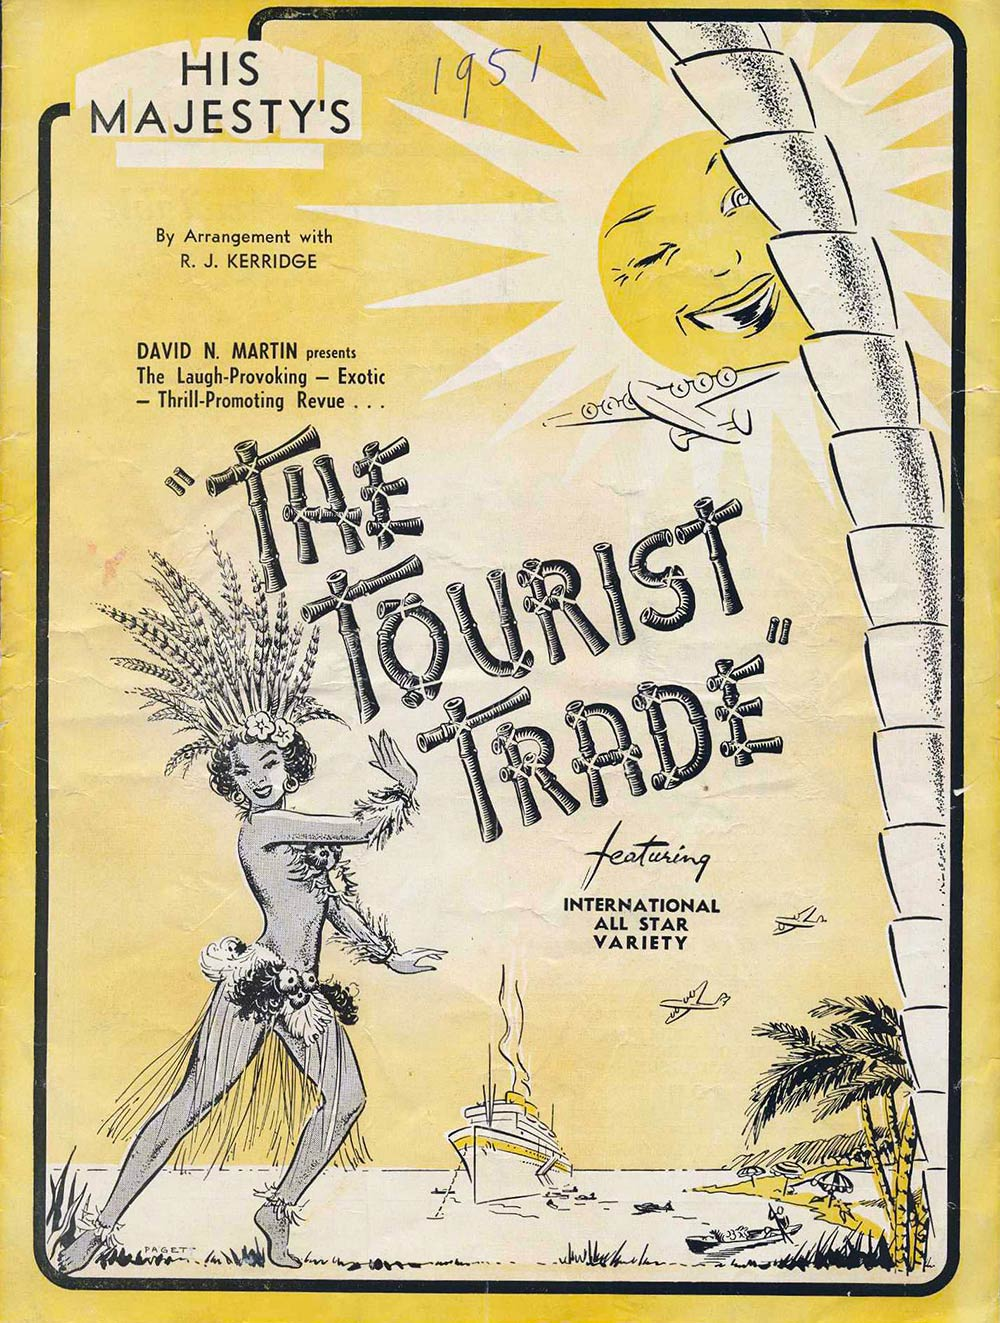 <em>The tourist trade</em>. Ralton R. James. (Tivoli Circuit). His Majesty's Theatre, Dunedin, May 25, 1951.